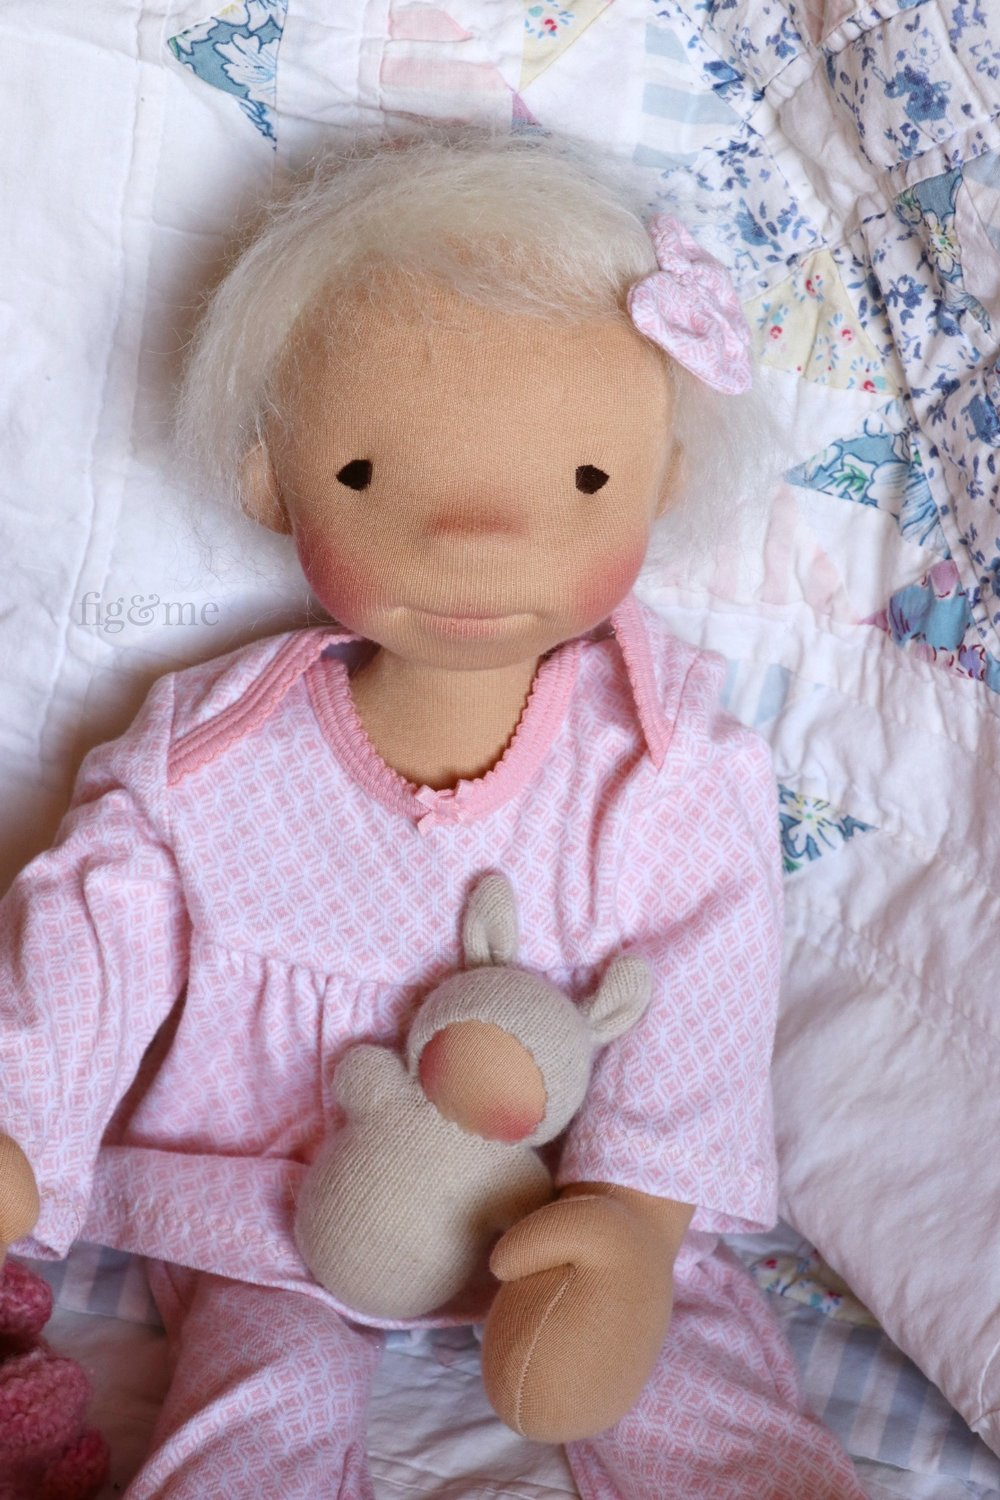 Miss Romy playing with her toys, a custom natural fiber art doll by fig and me.